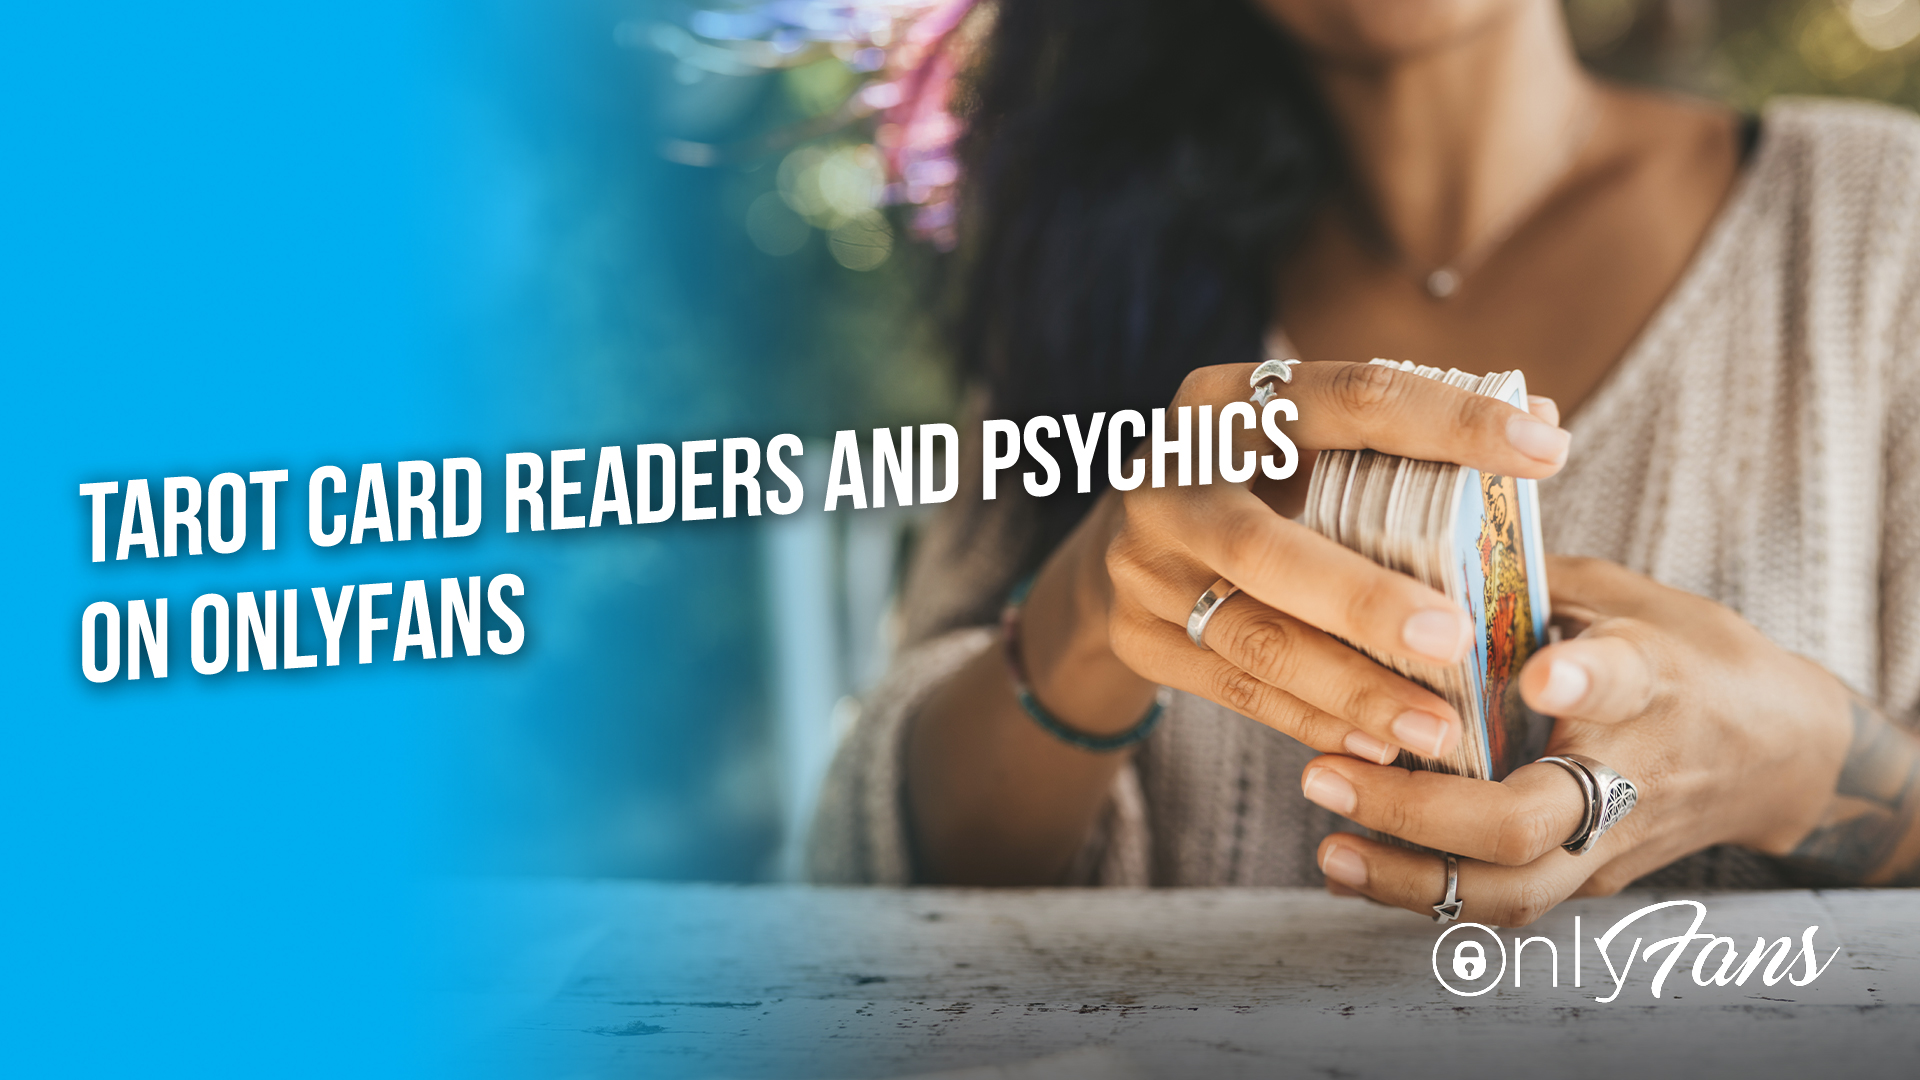 Tarot Card Readers and Psychics on OnlyFans